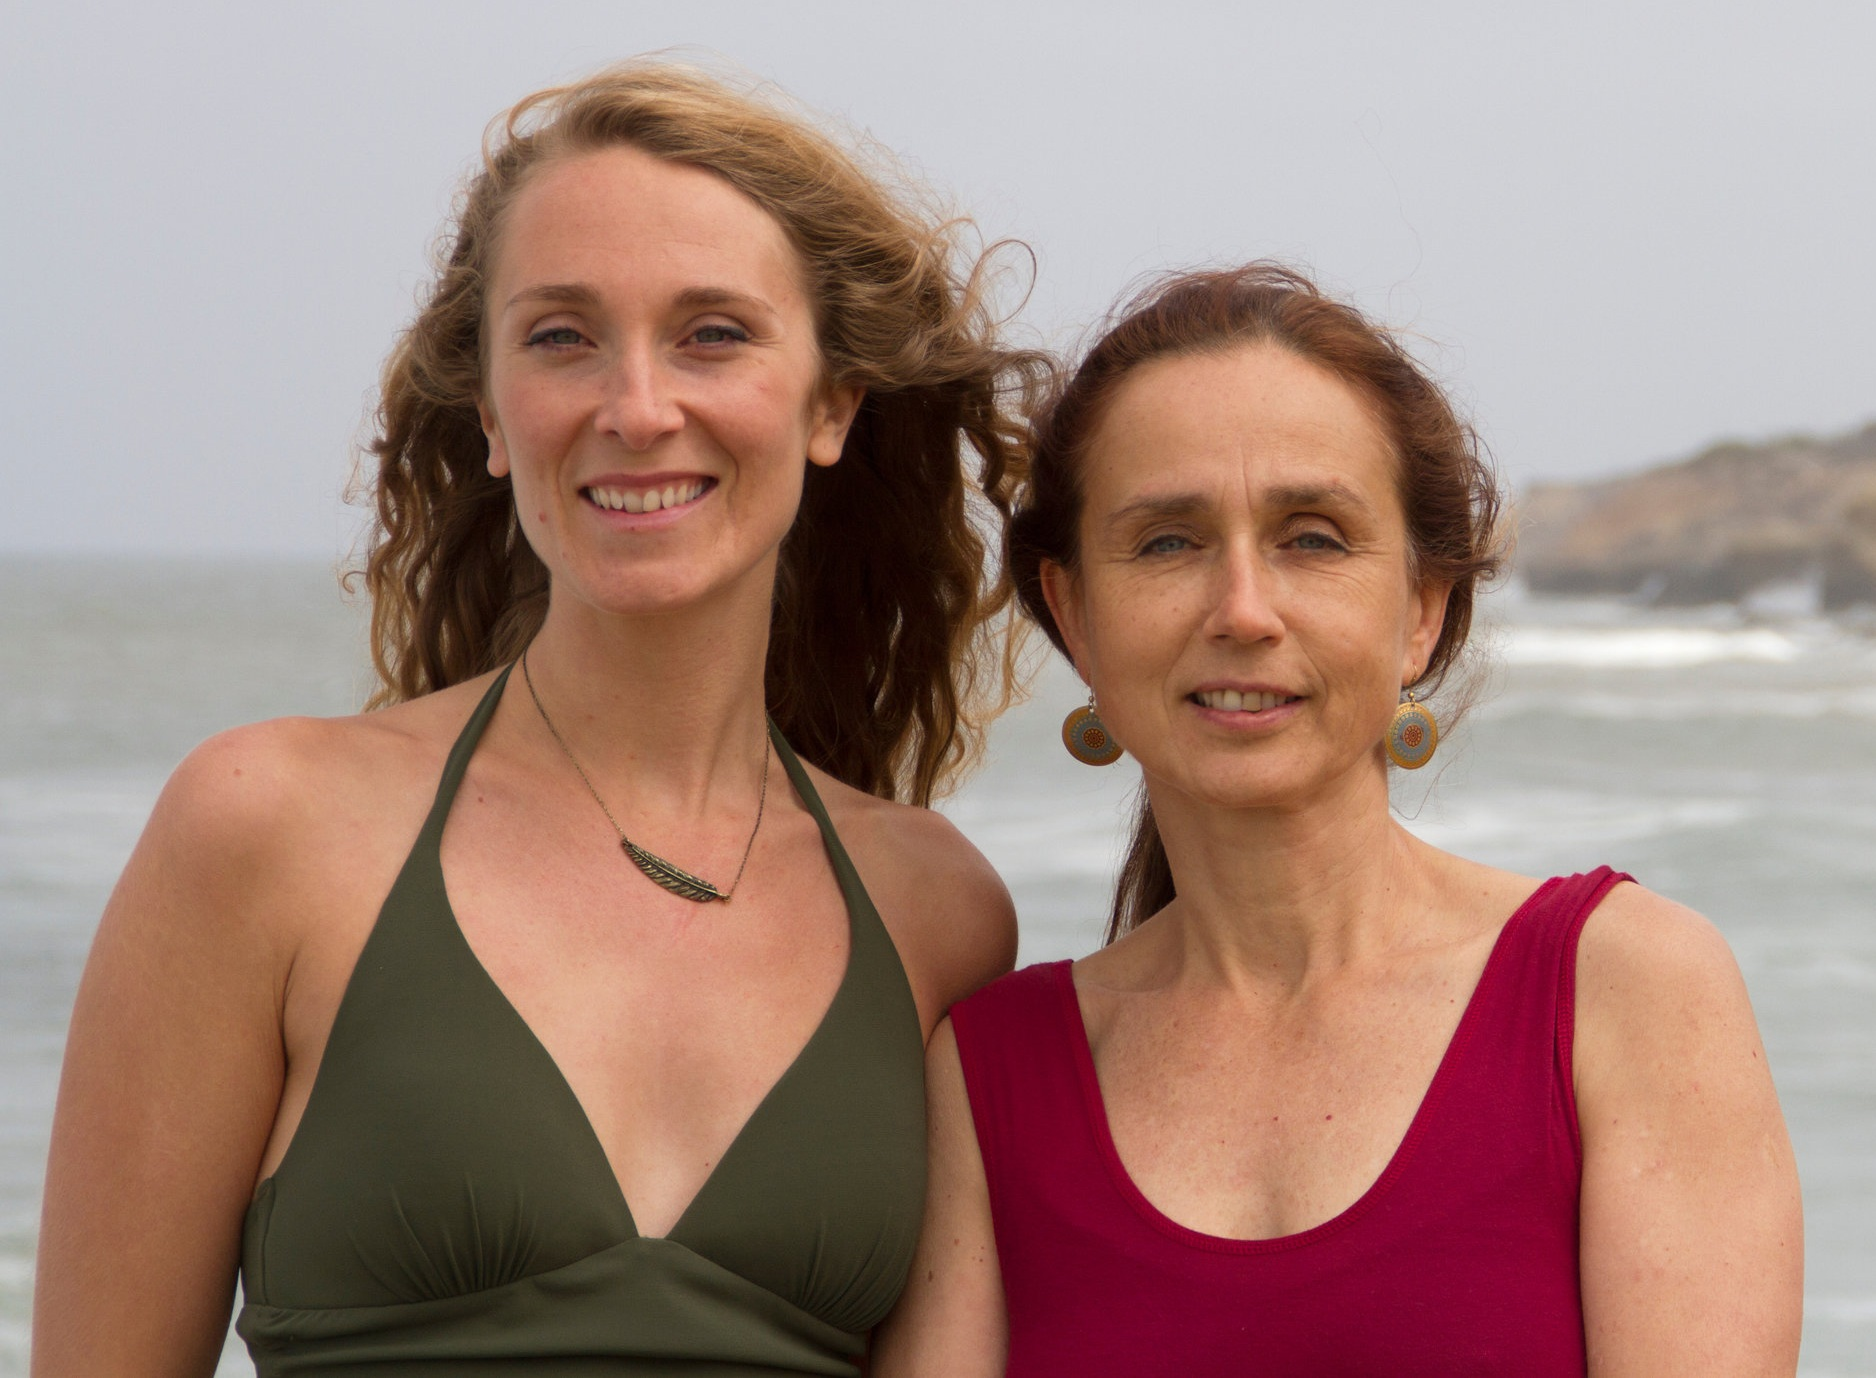 Meet Your Neurogenic Yoga and TRE Lead Trainers -